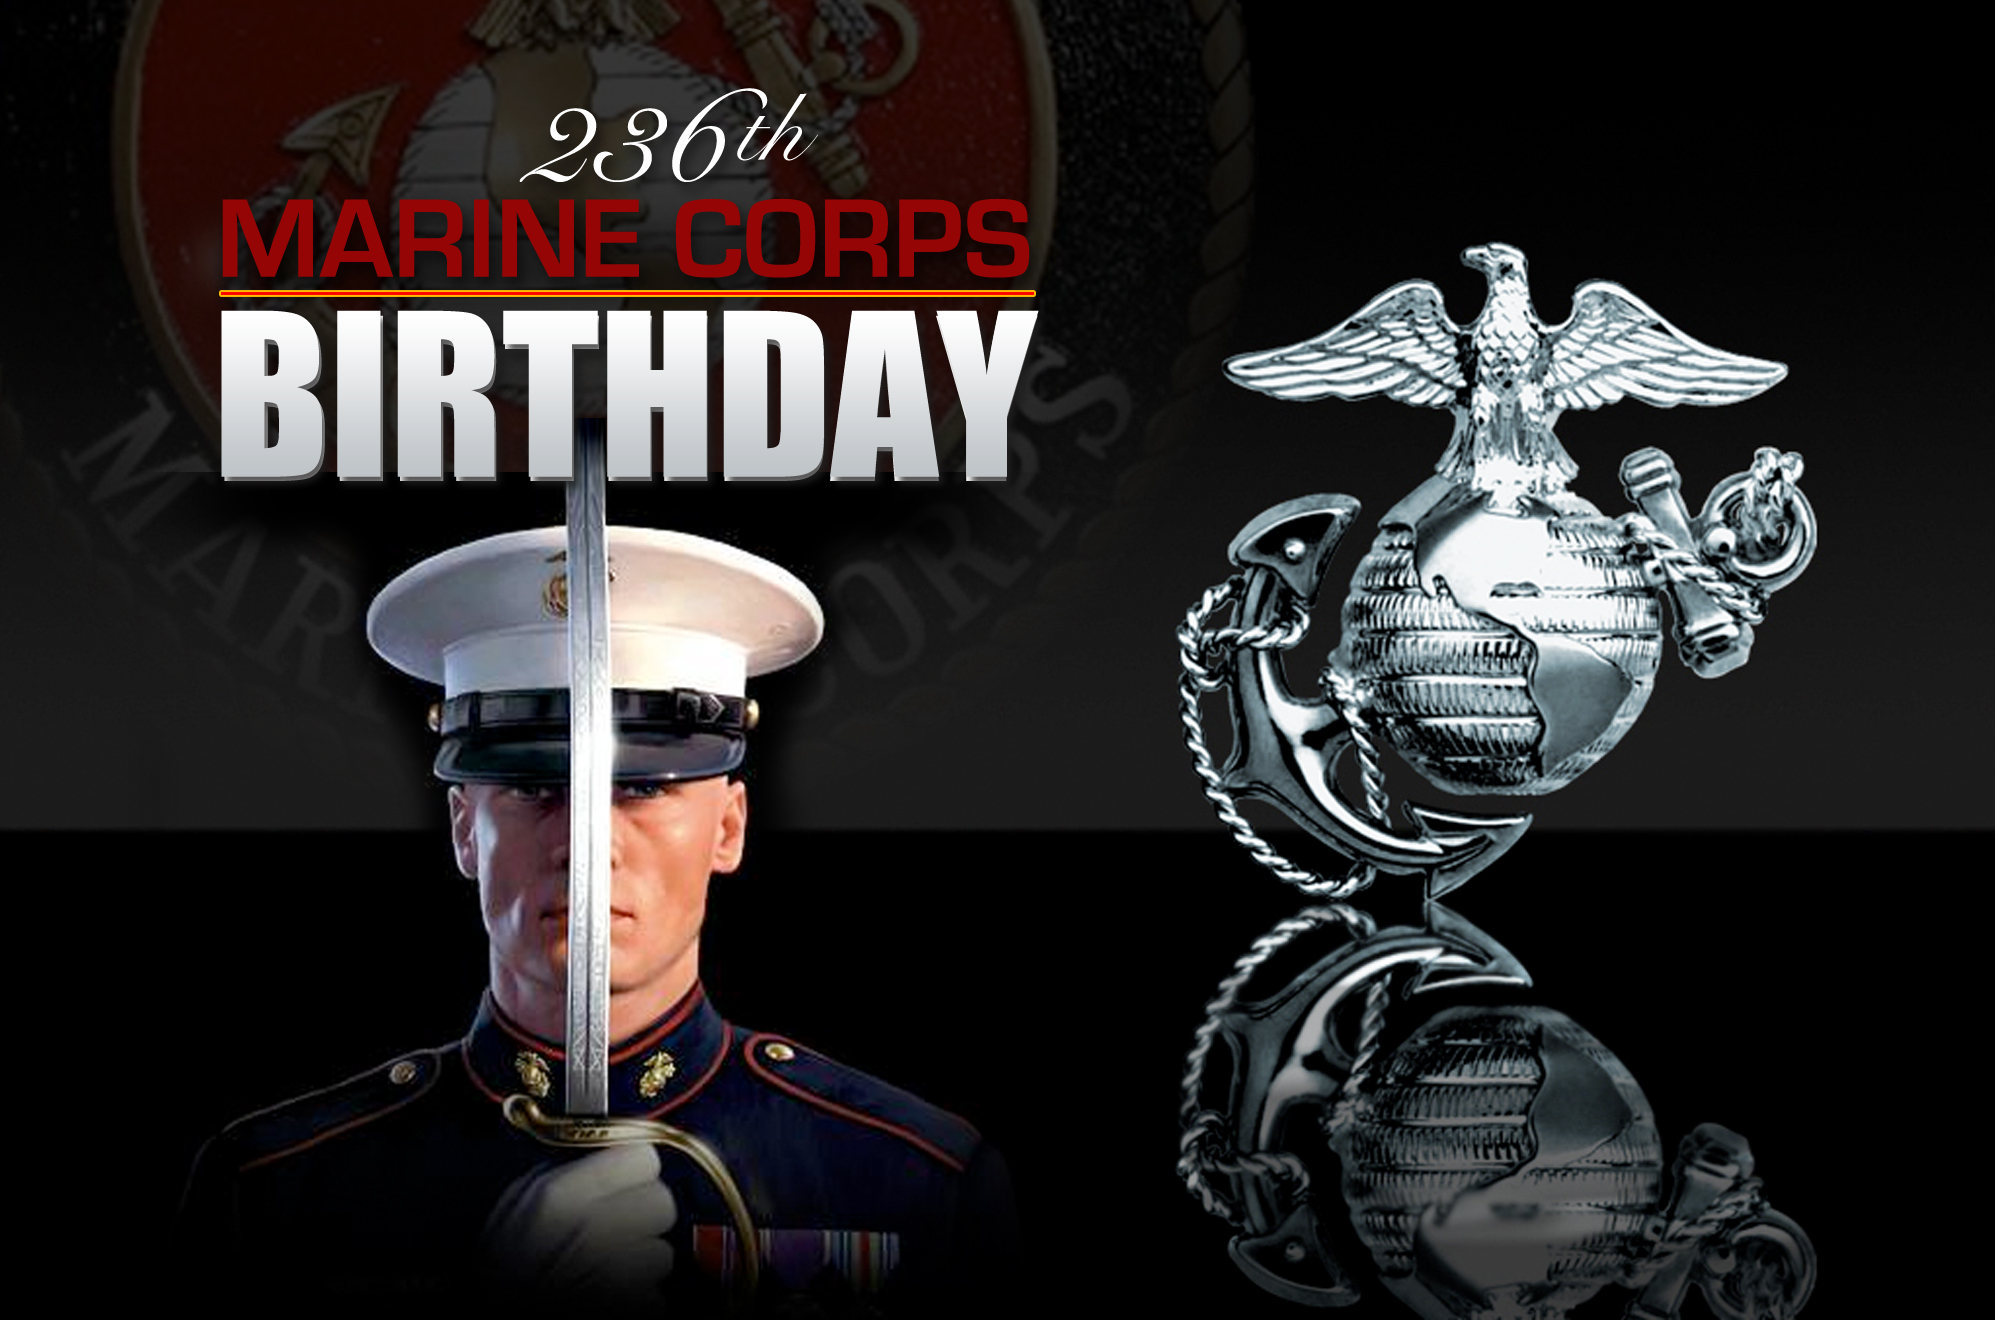 united states marine corps birthday message ; 111109-F-PA987-005